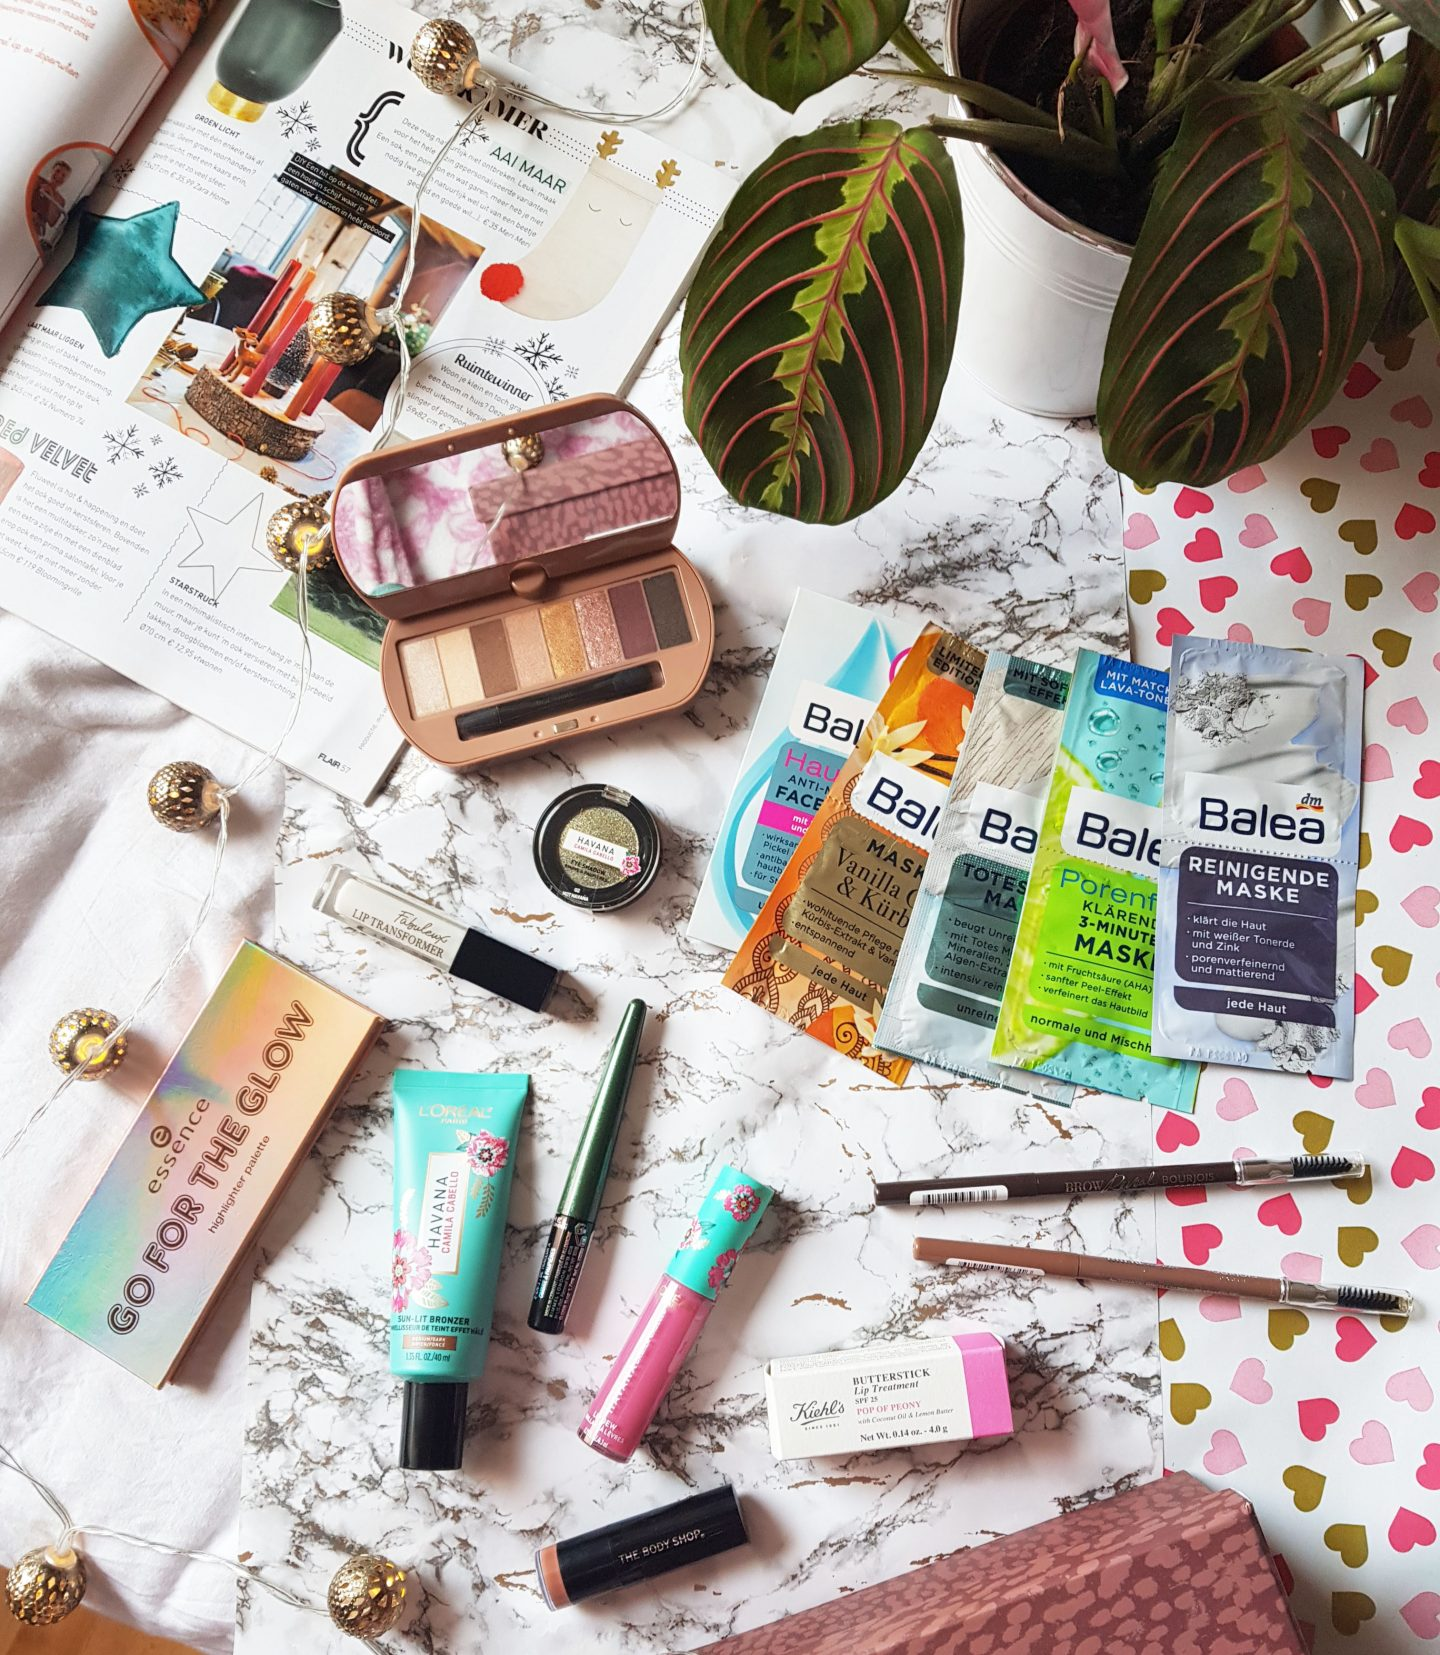 6e Blogverjaardag winactie | Win een make-up pakket t.w.v. €100!